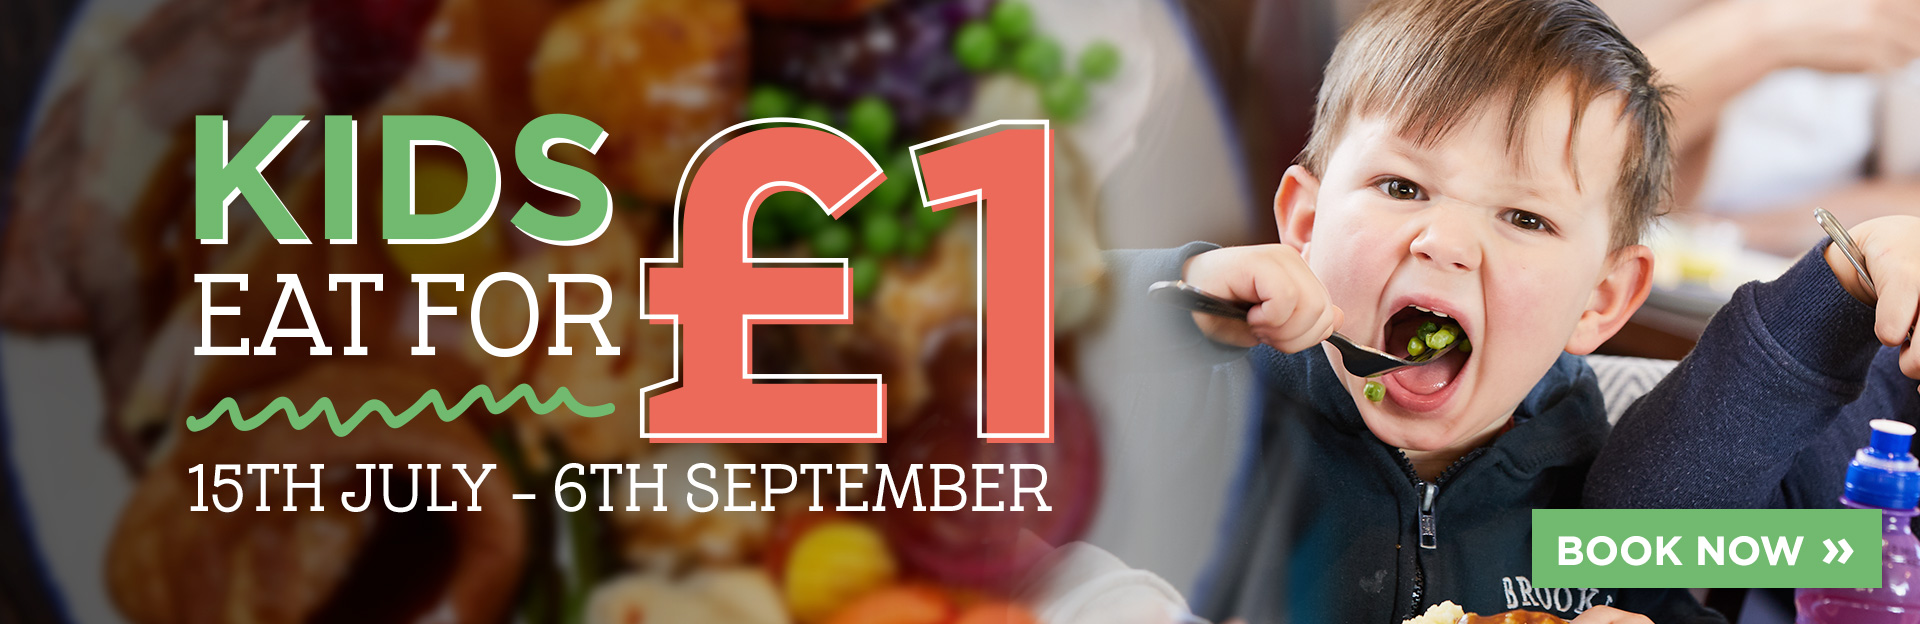 Kids eat for £1 at The Waters Edge